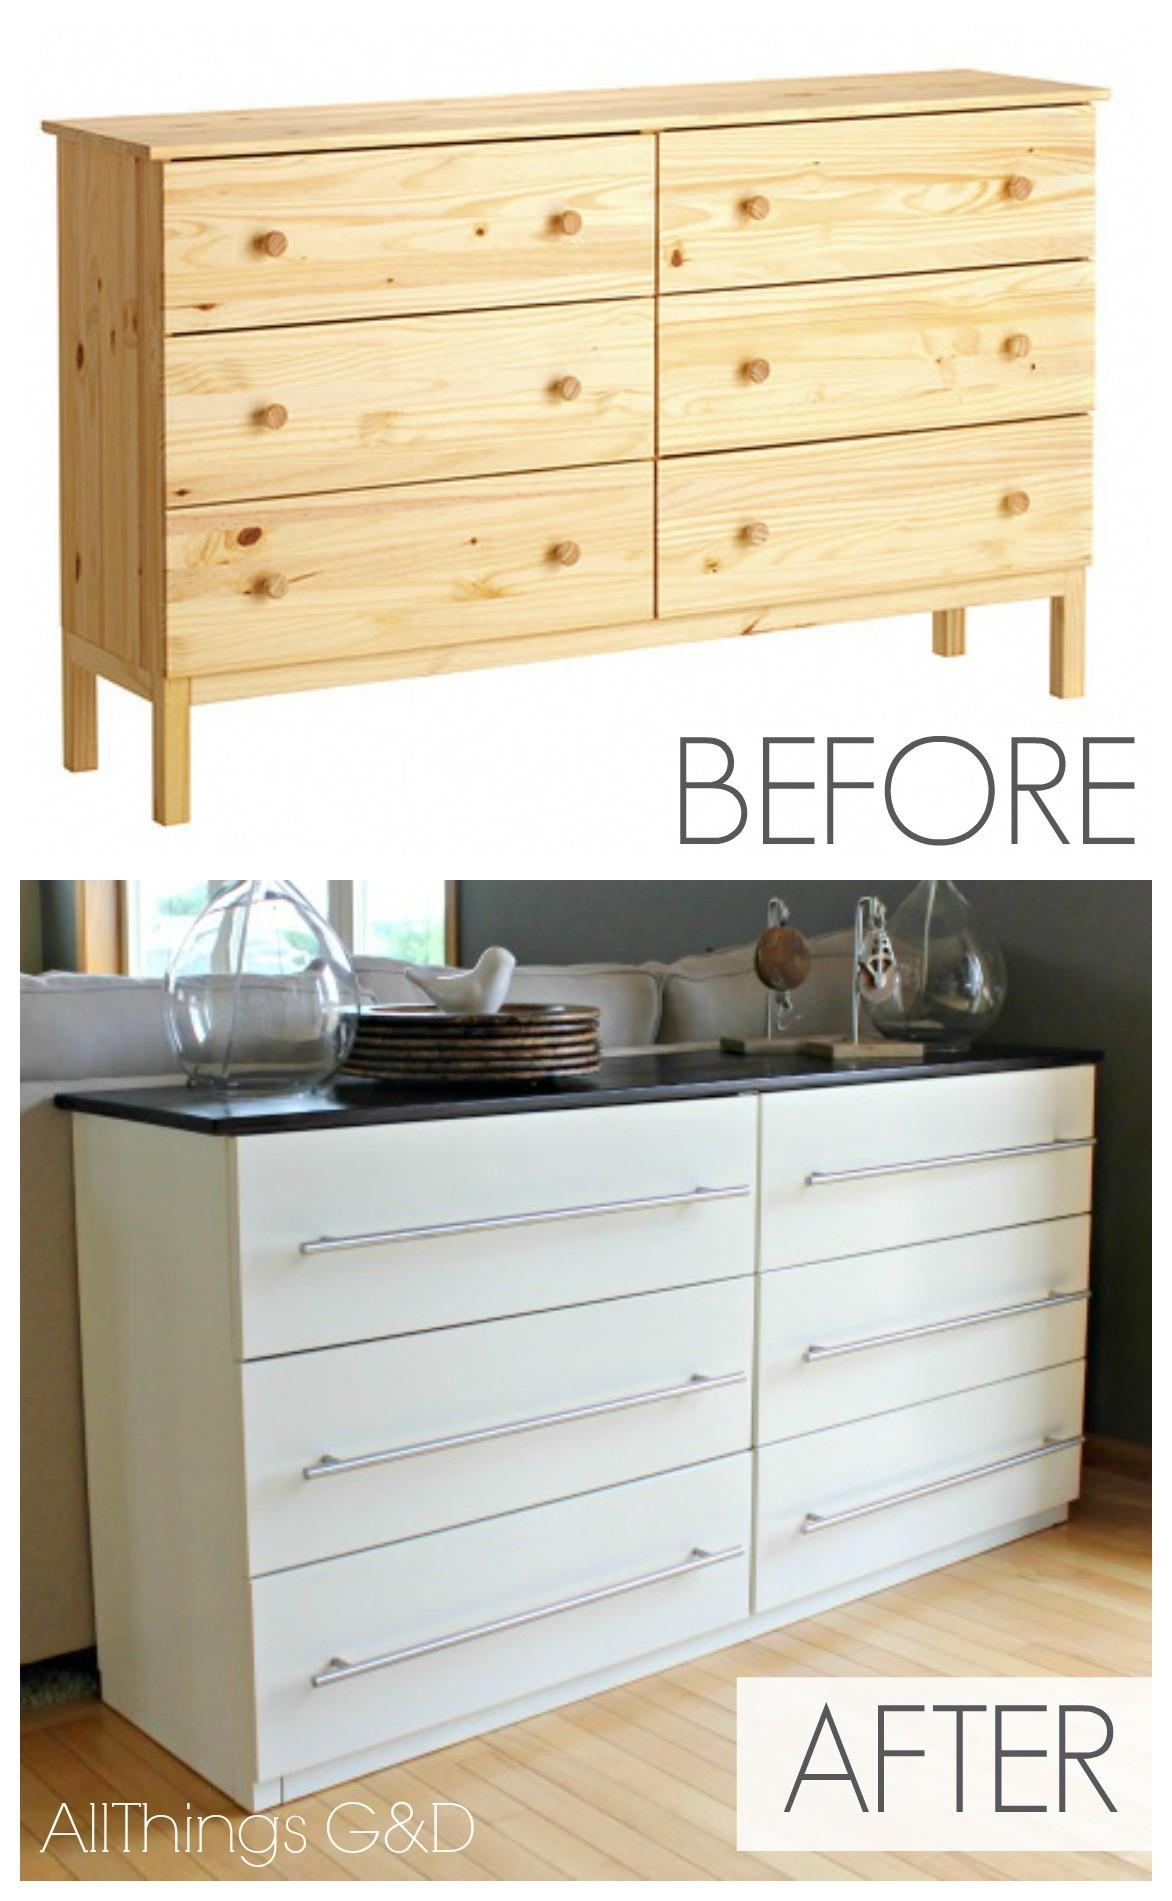 Full Size of Extremely Beautiful Ikea Sideboards And Dressers Hacks That Are Sofa Mit Schlaffunktion Küche Kosten Sideboard Arbeitsplatte Betten 160x200 Wohnzimmer Kaufen Wohnzimmer Ikea Sideboard